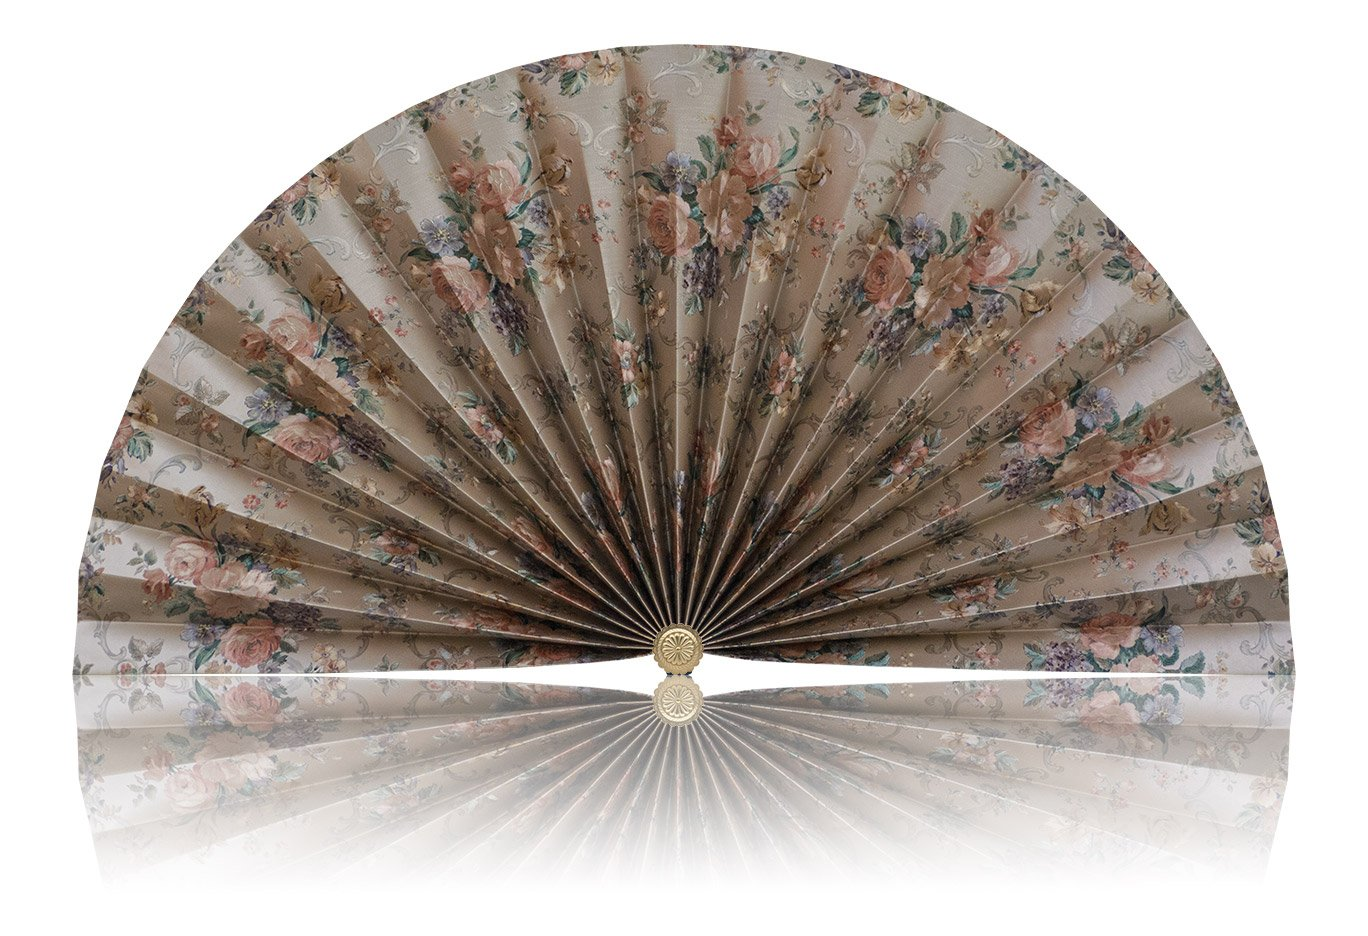 Neat Pleats Decorative Fan, Hearth Screen, or Overdoor Wall Hanging - L456 - Light Gold with Roses Flower Floral by Neat Pleats